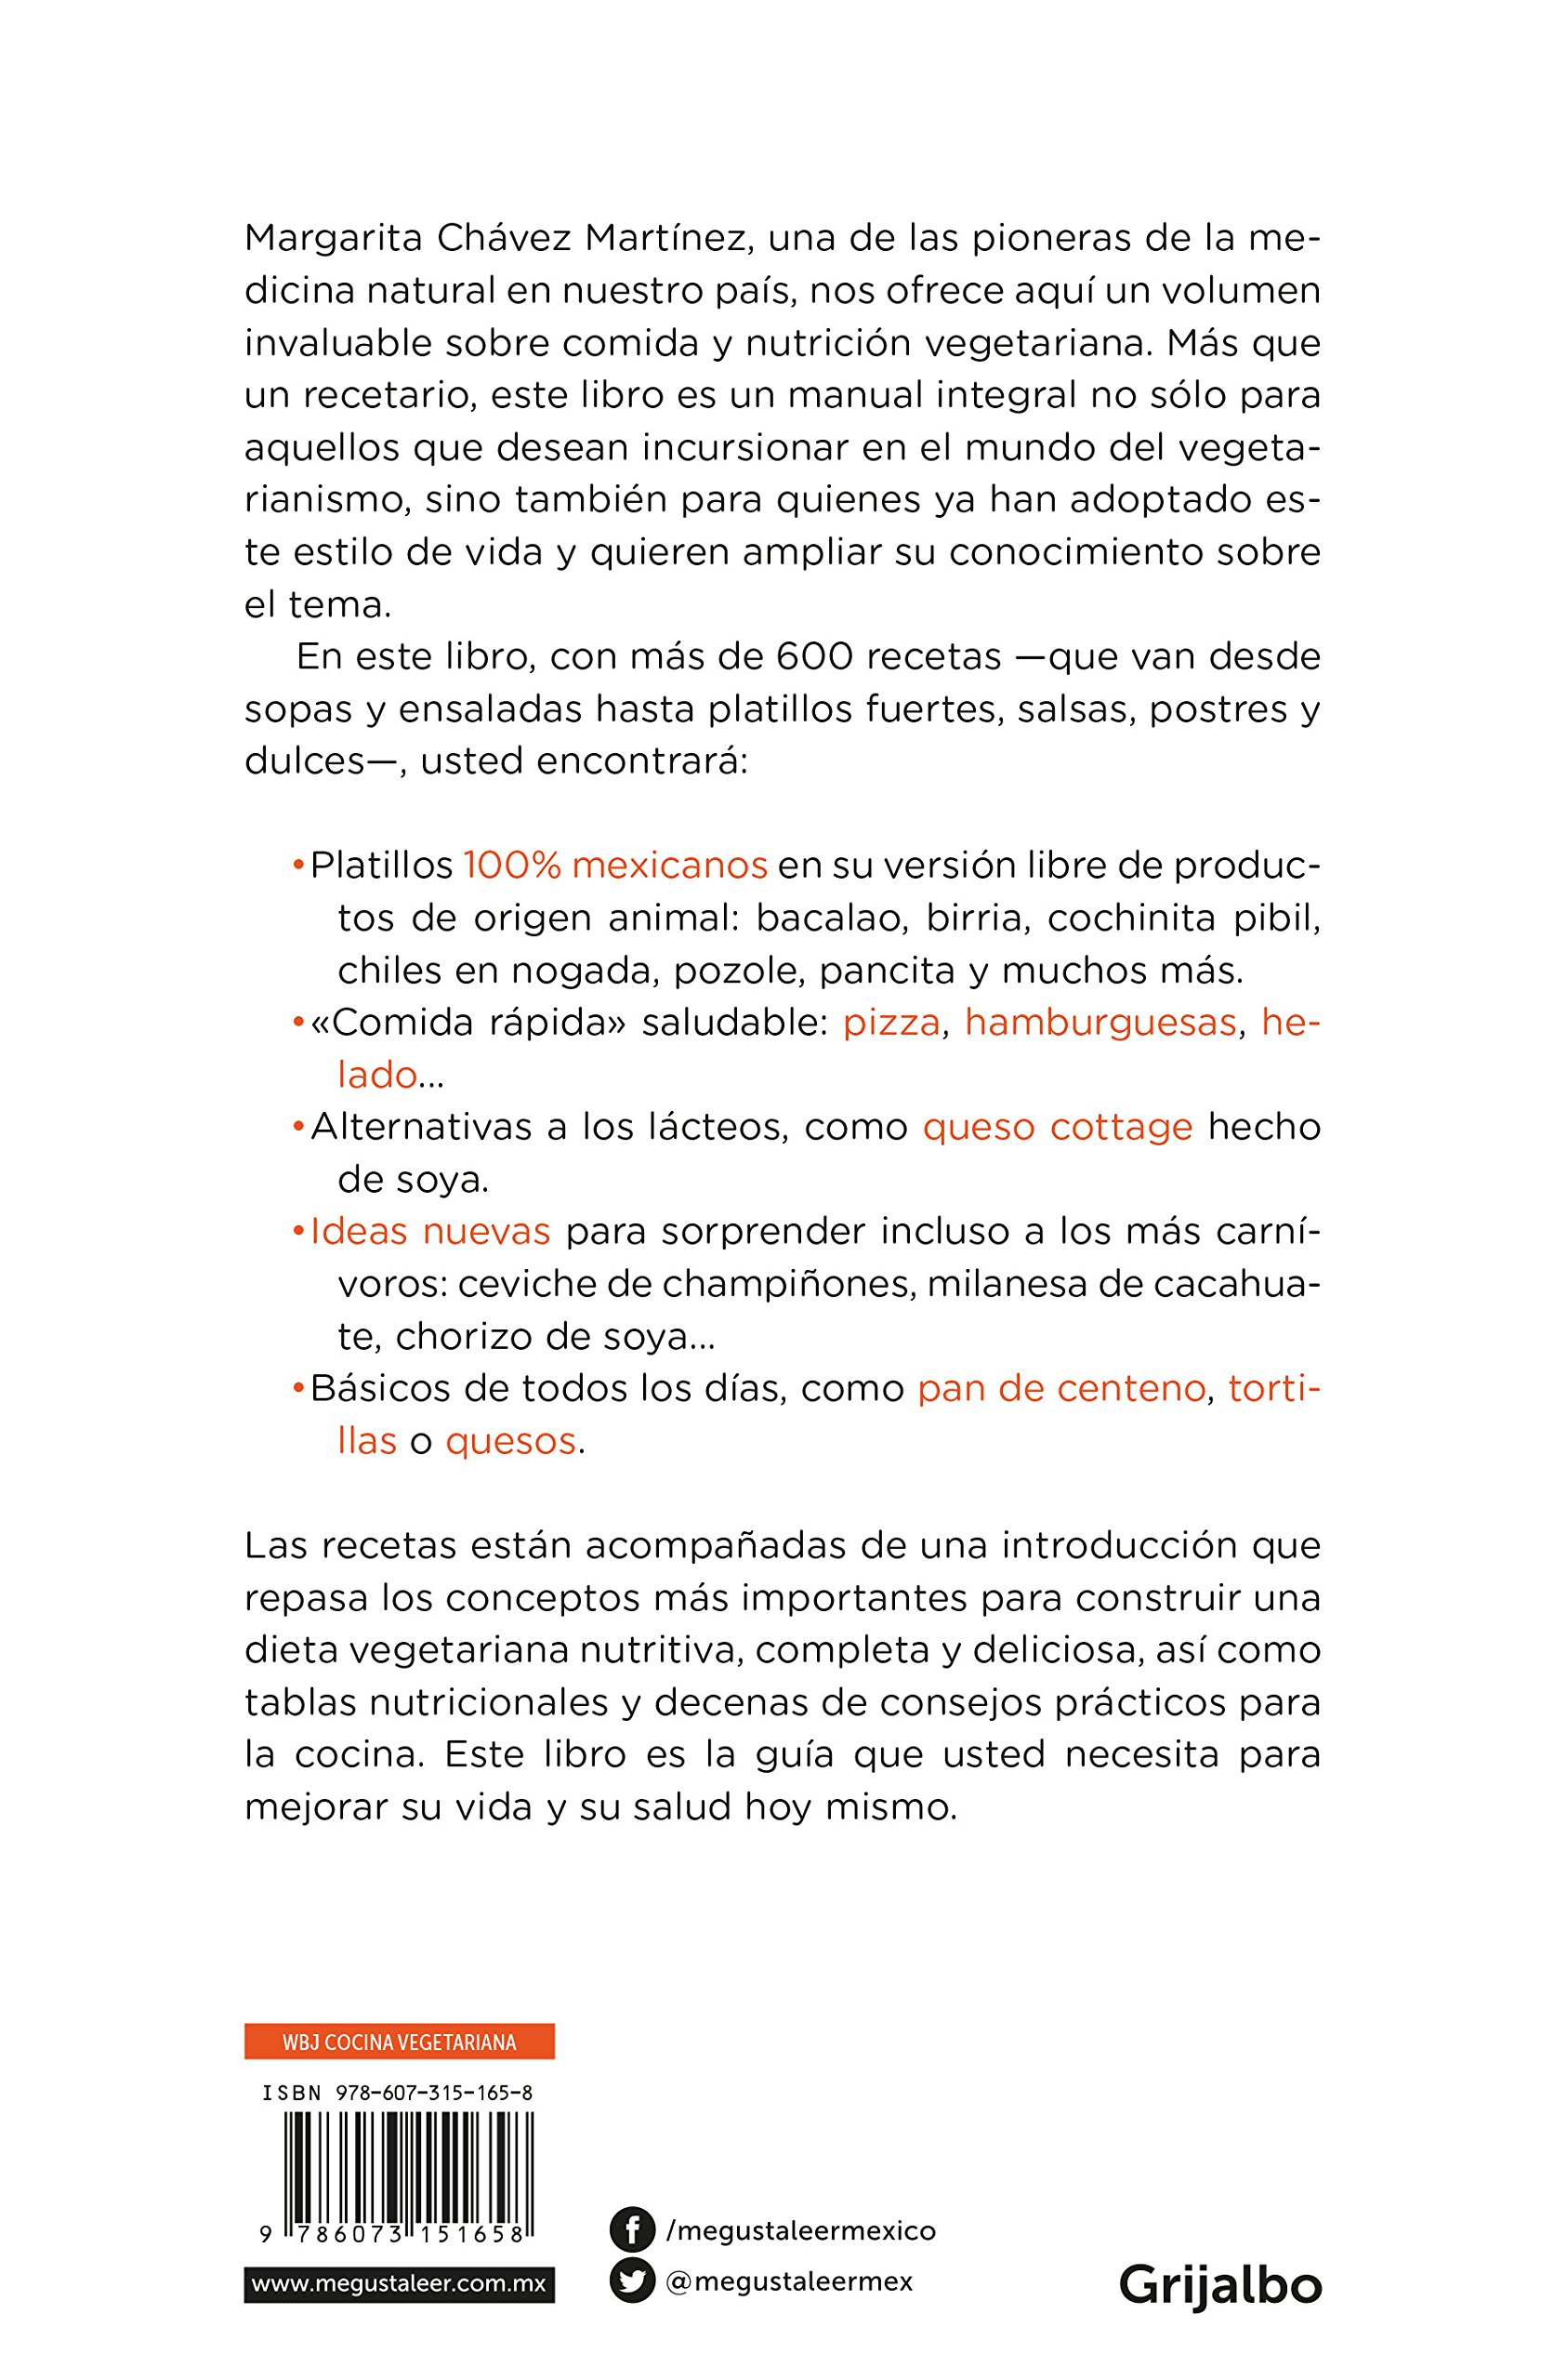 Nutrición vegetariana / Vegetarian Meals (Spanish Edition): Margarita Chavez Martinez: 9786073151658: Amazon.com: Books